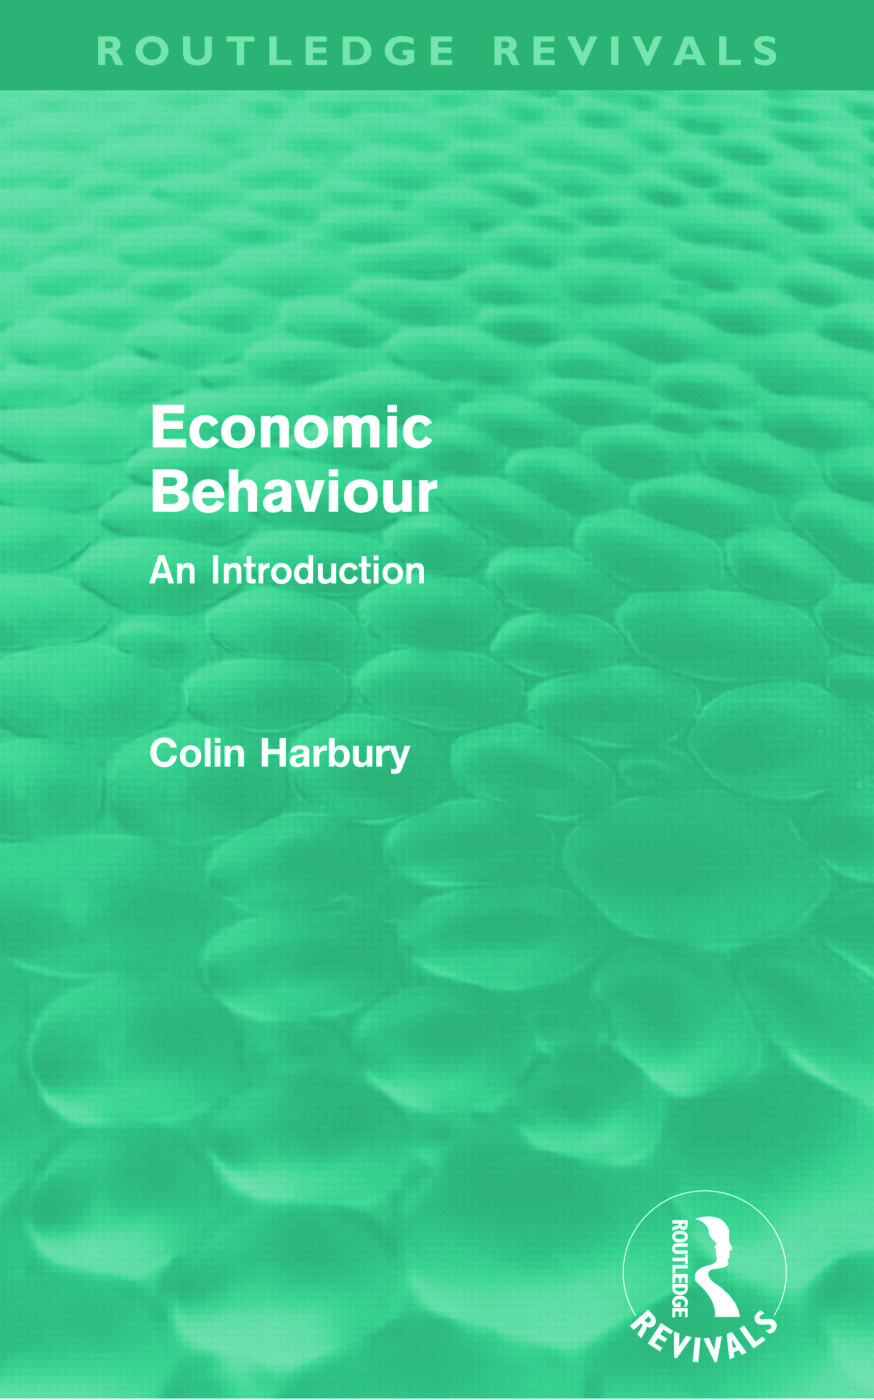 Economic Behaviour (Routledge Revivals)